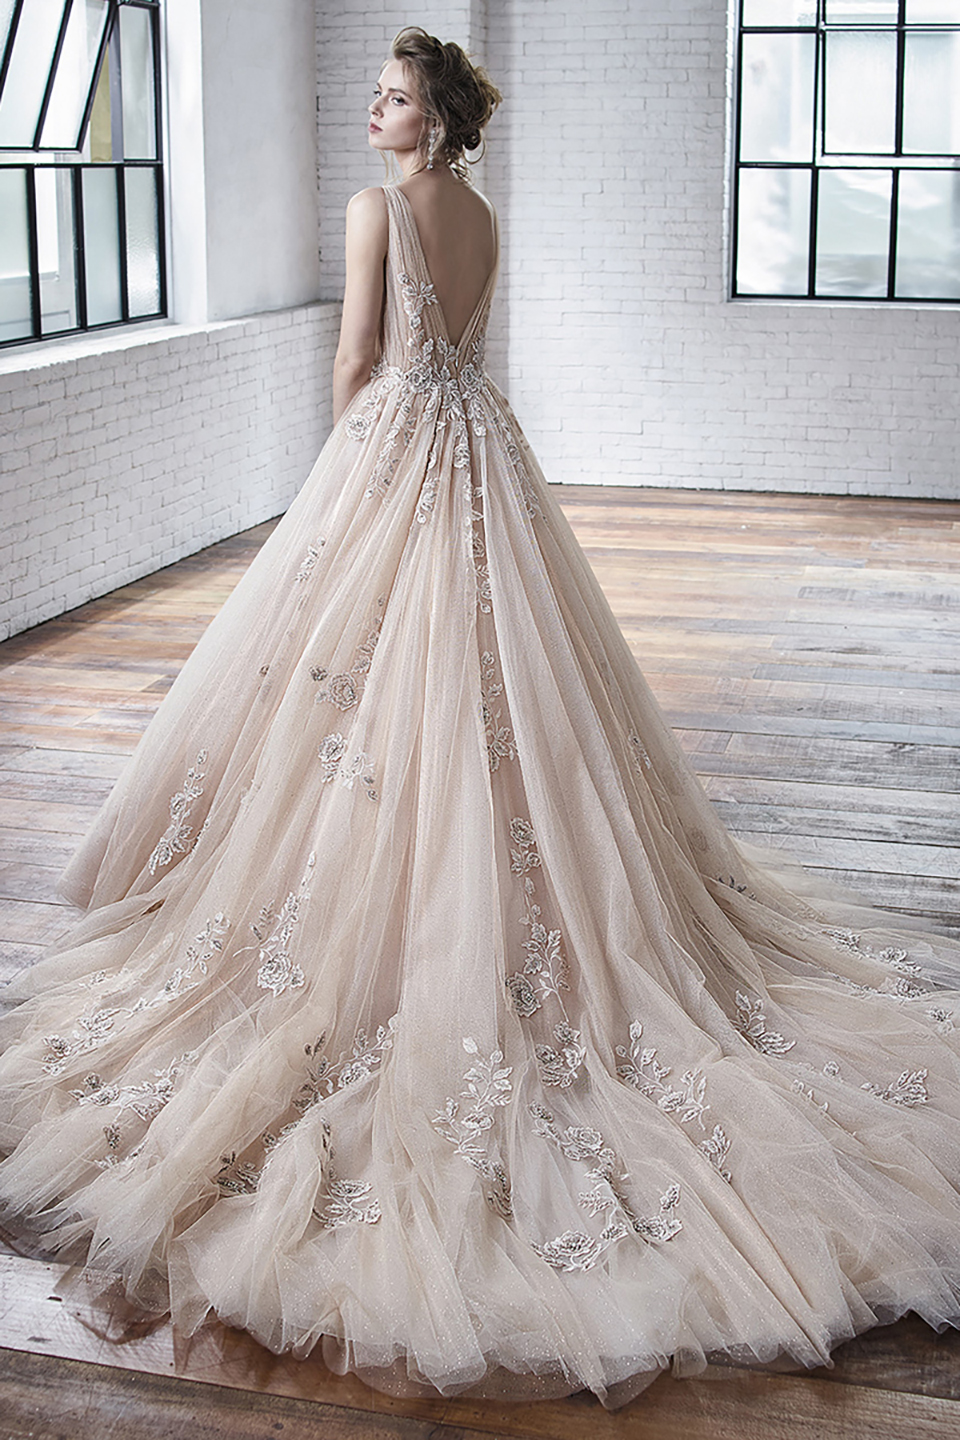 Cheryl:  This ballgown is a bridal fairytale come true! The gathered bodice and skirt are made all the more beautiful with the glitter tulle and beaded embroidered lace. This gown will surely sweep you off your feet!